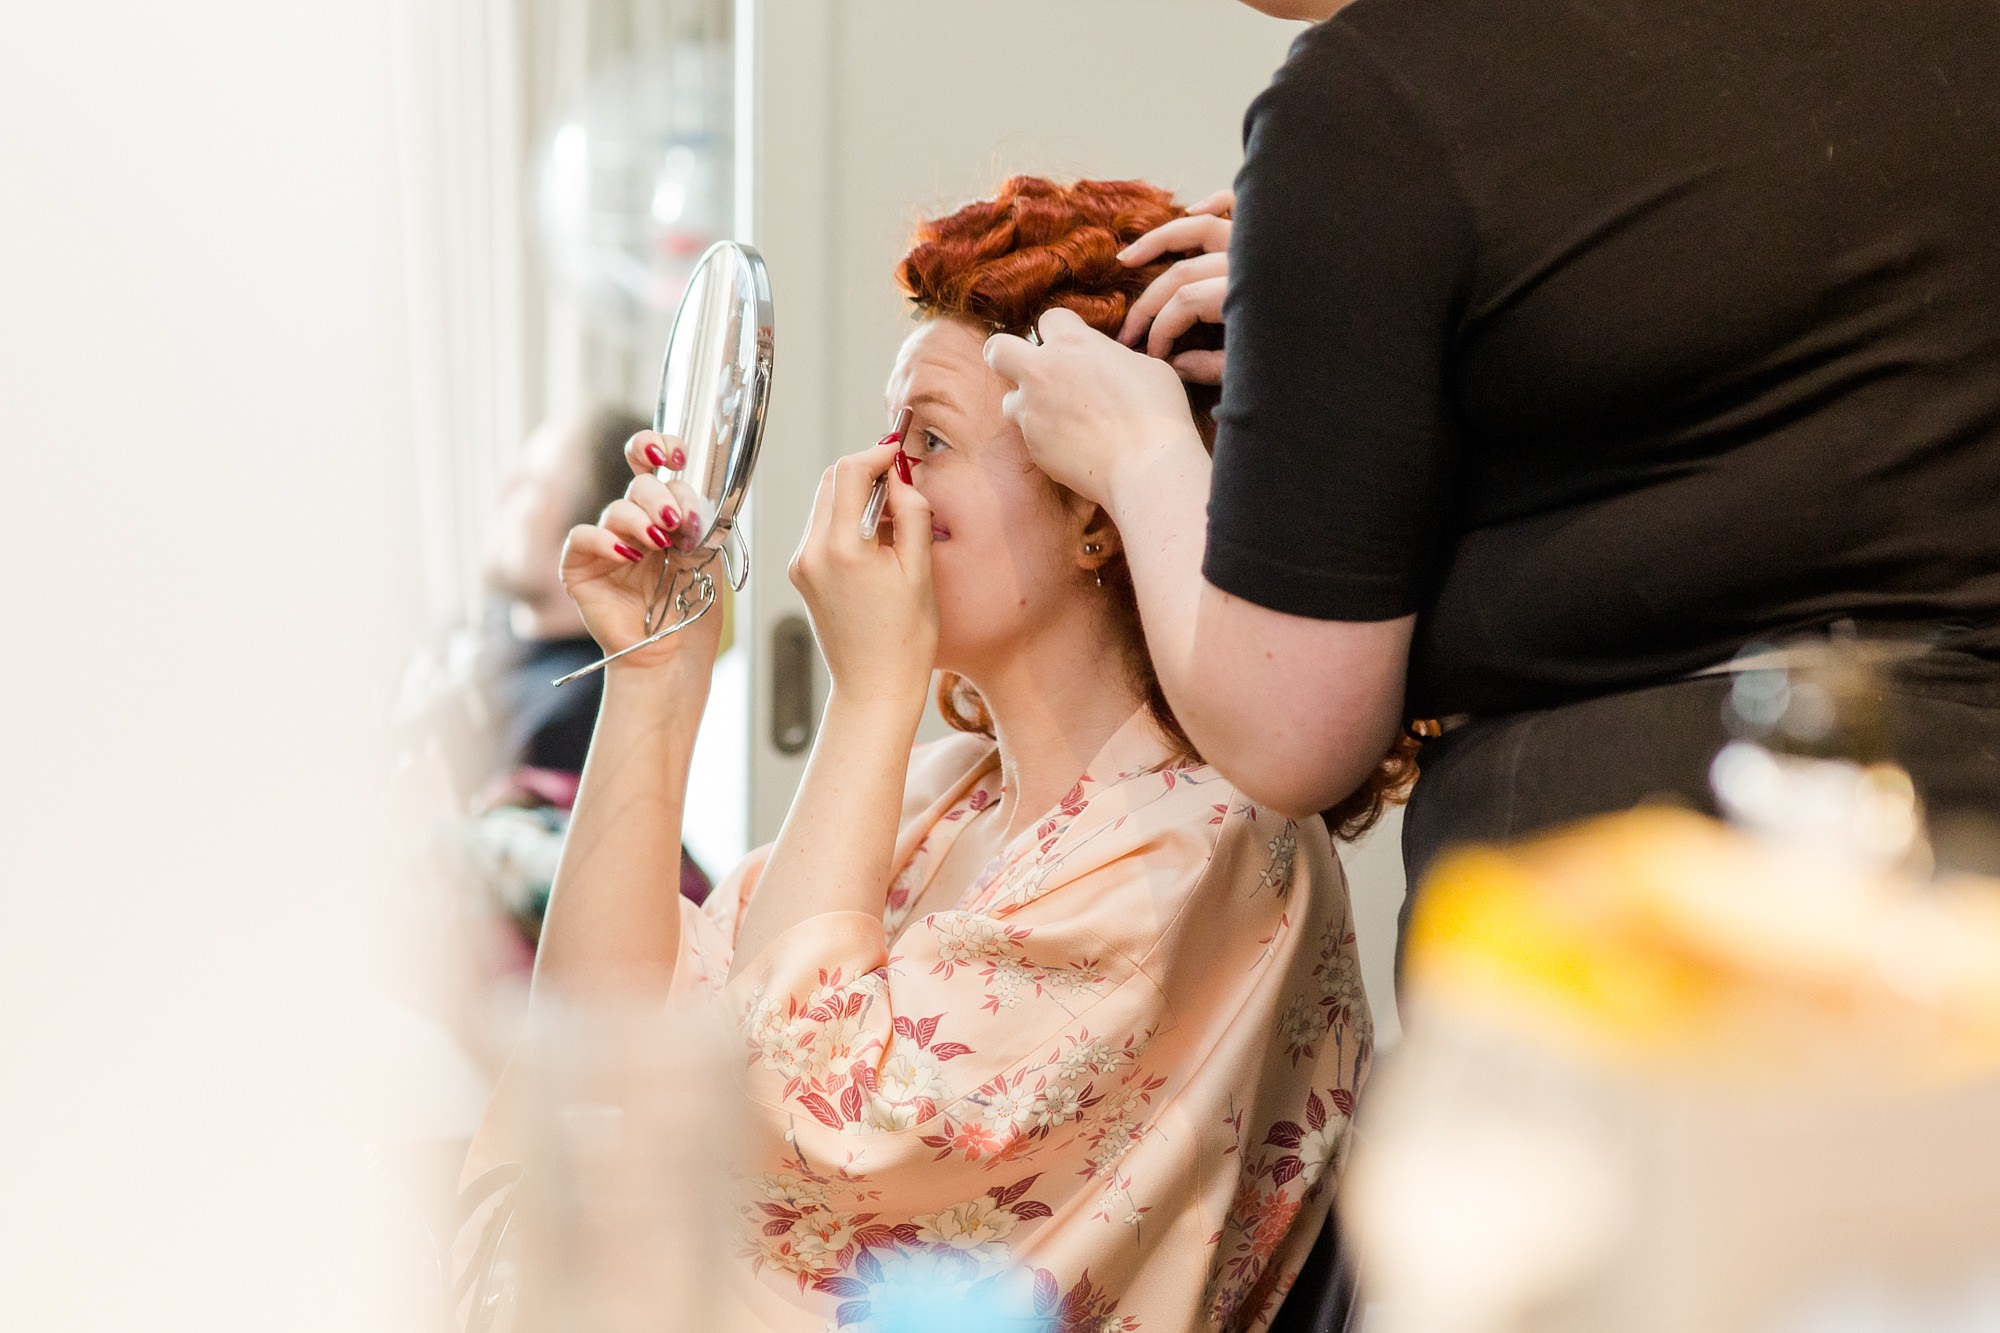 The Grange Ealing wedding bride does her makeup while her hair is being styled